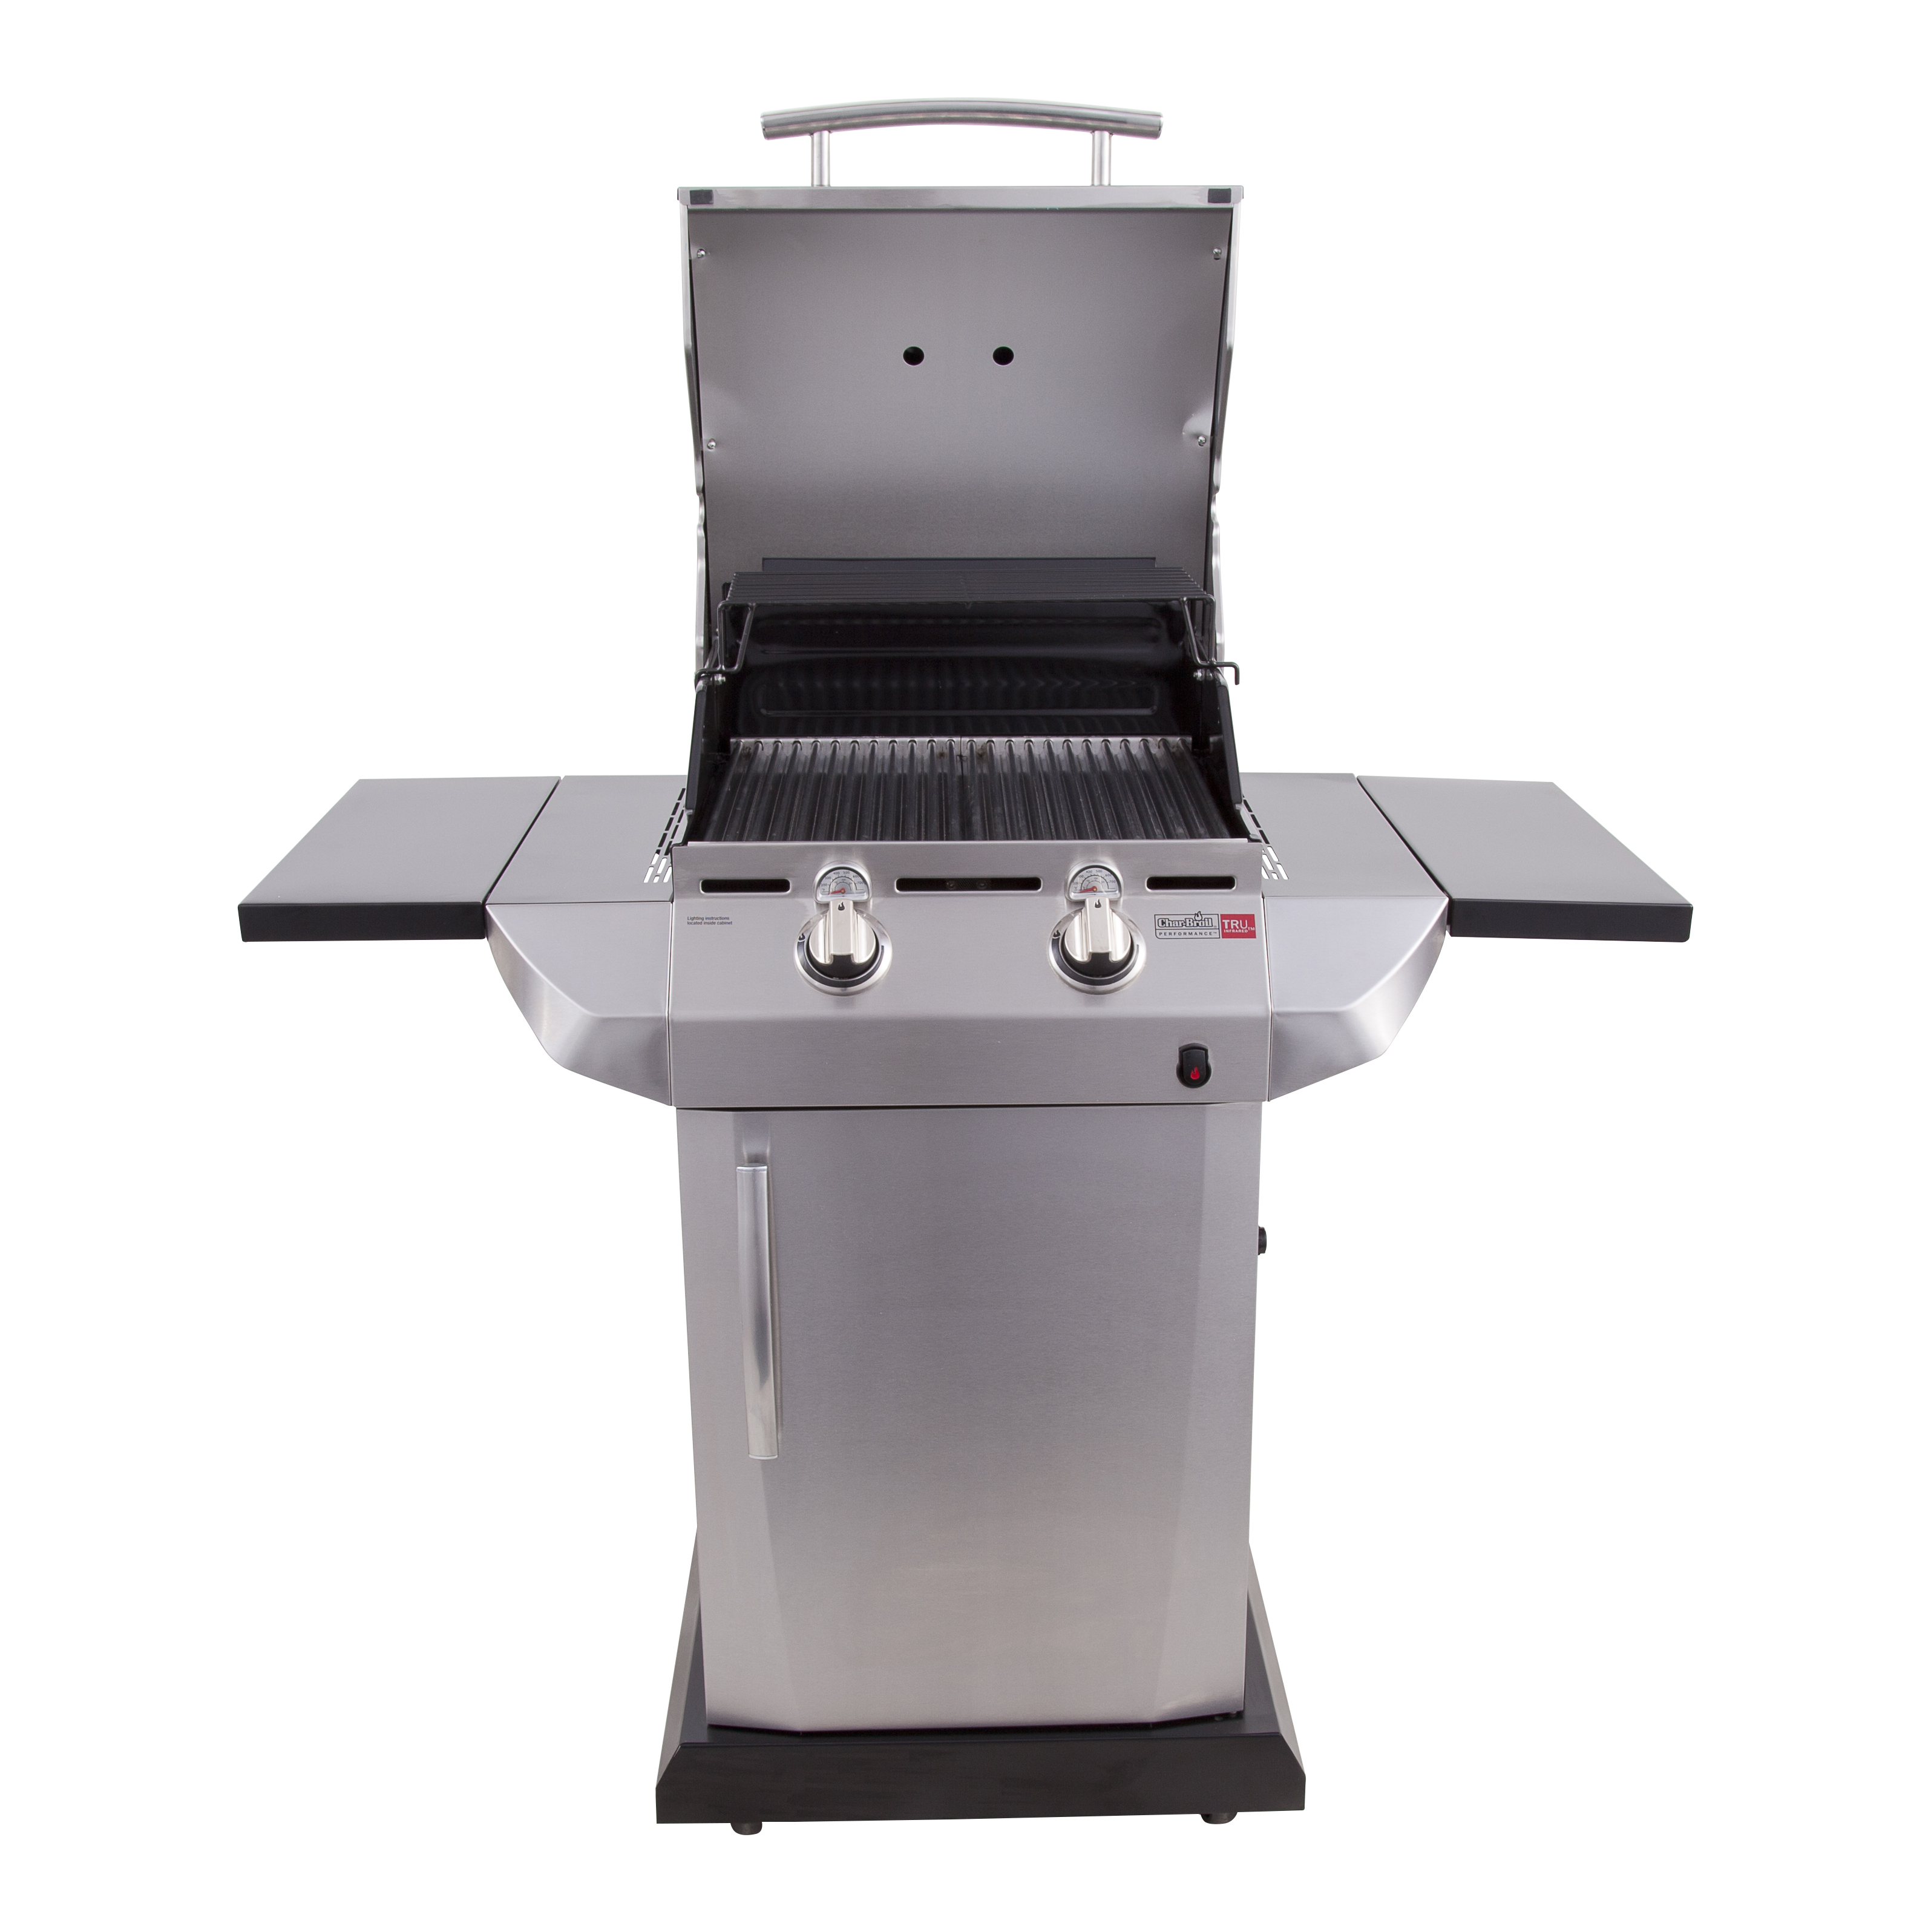 Char-Broil TRU-Infrared Performance 2-Burner Gas Grill with Storage Cabinet - Dual Fuel Capable